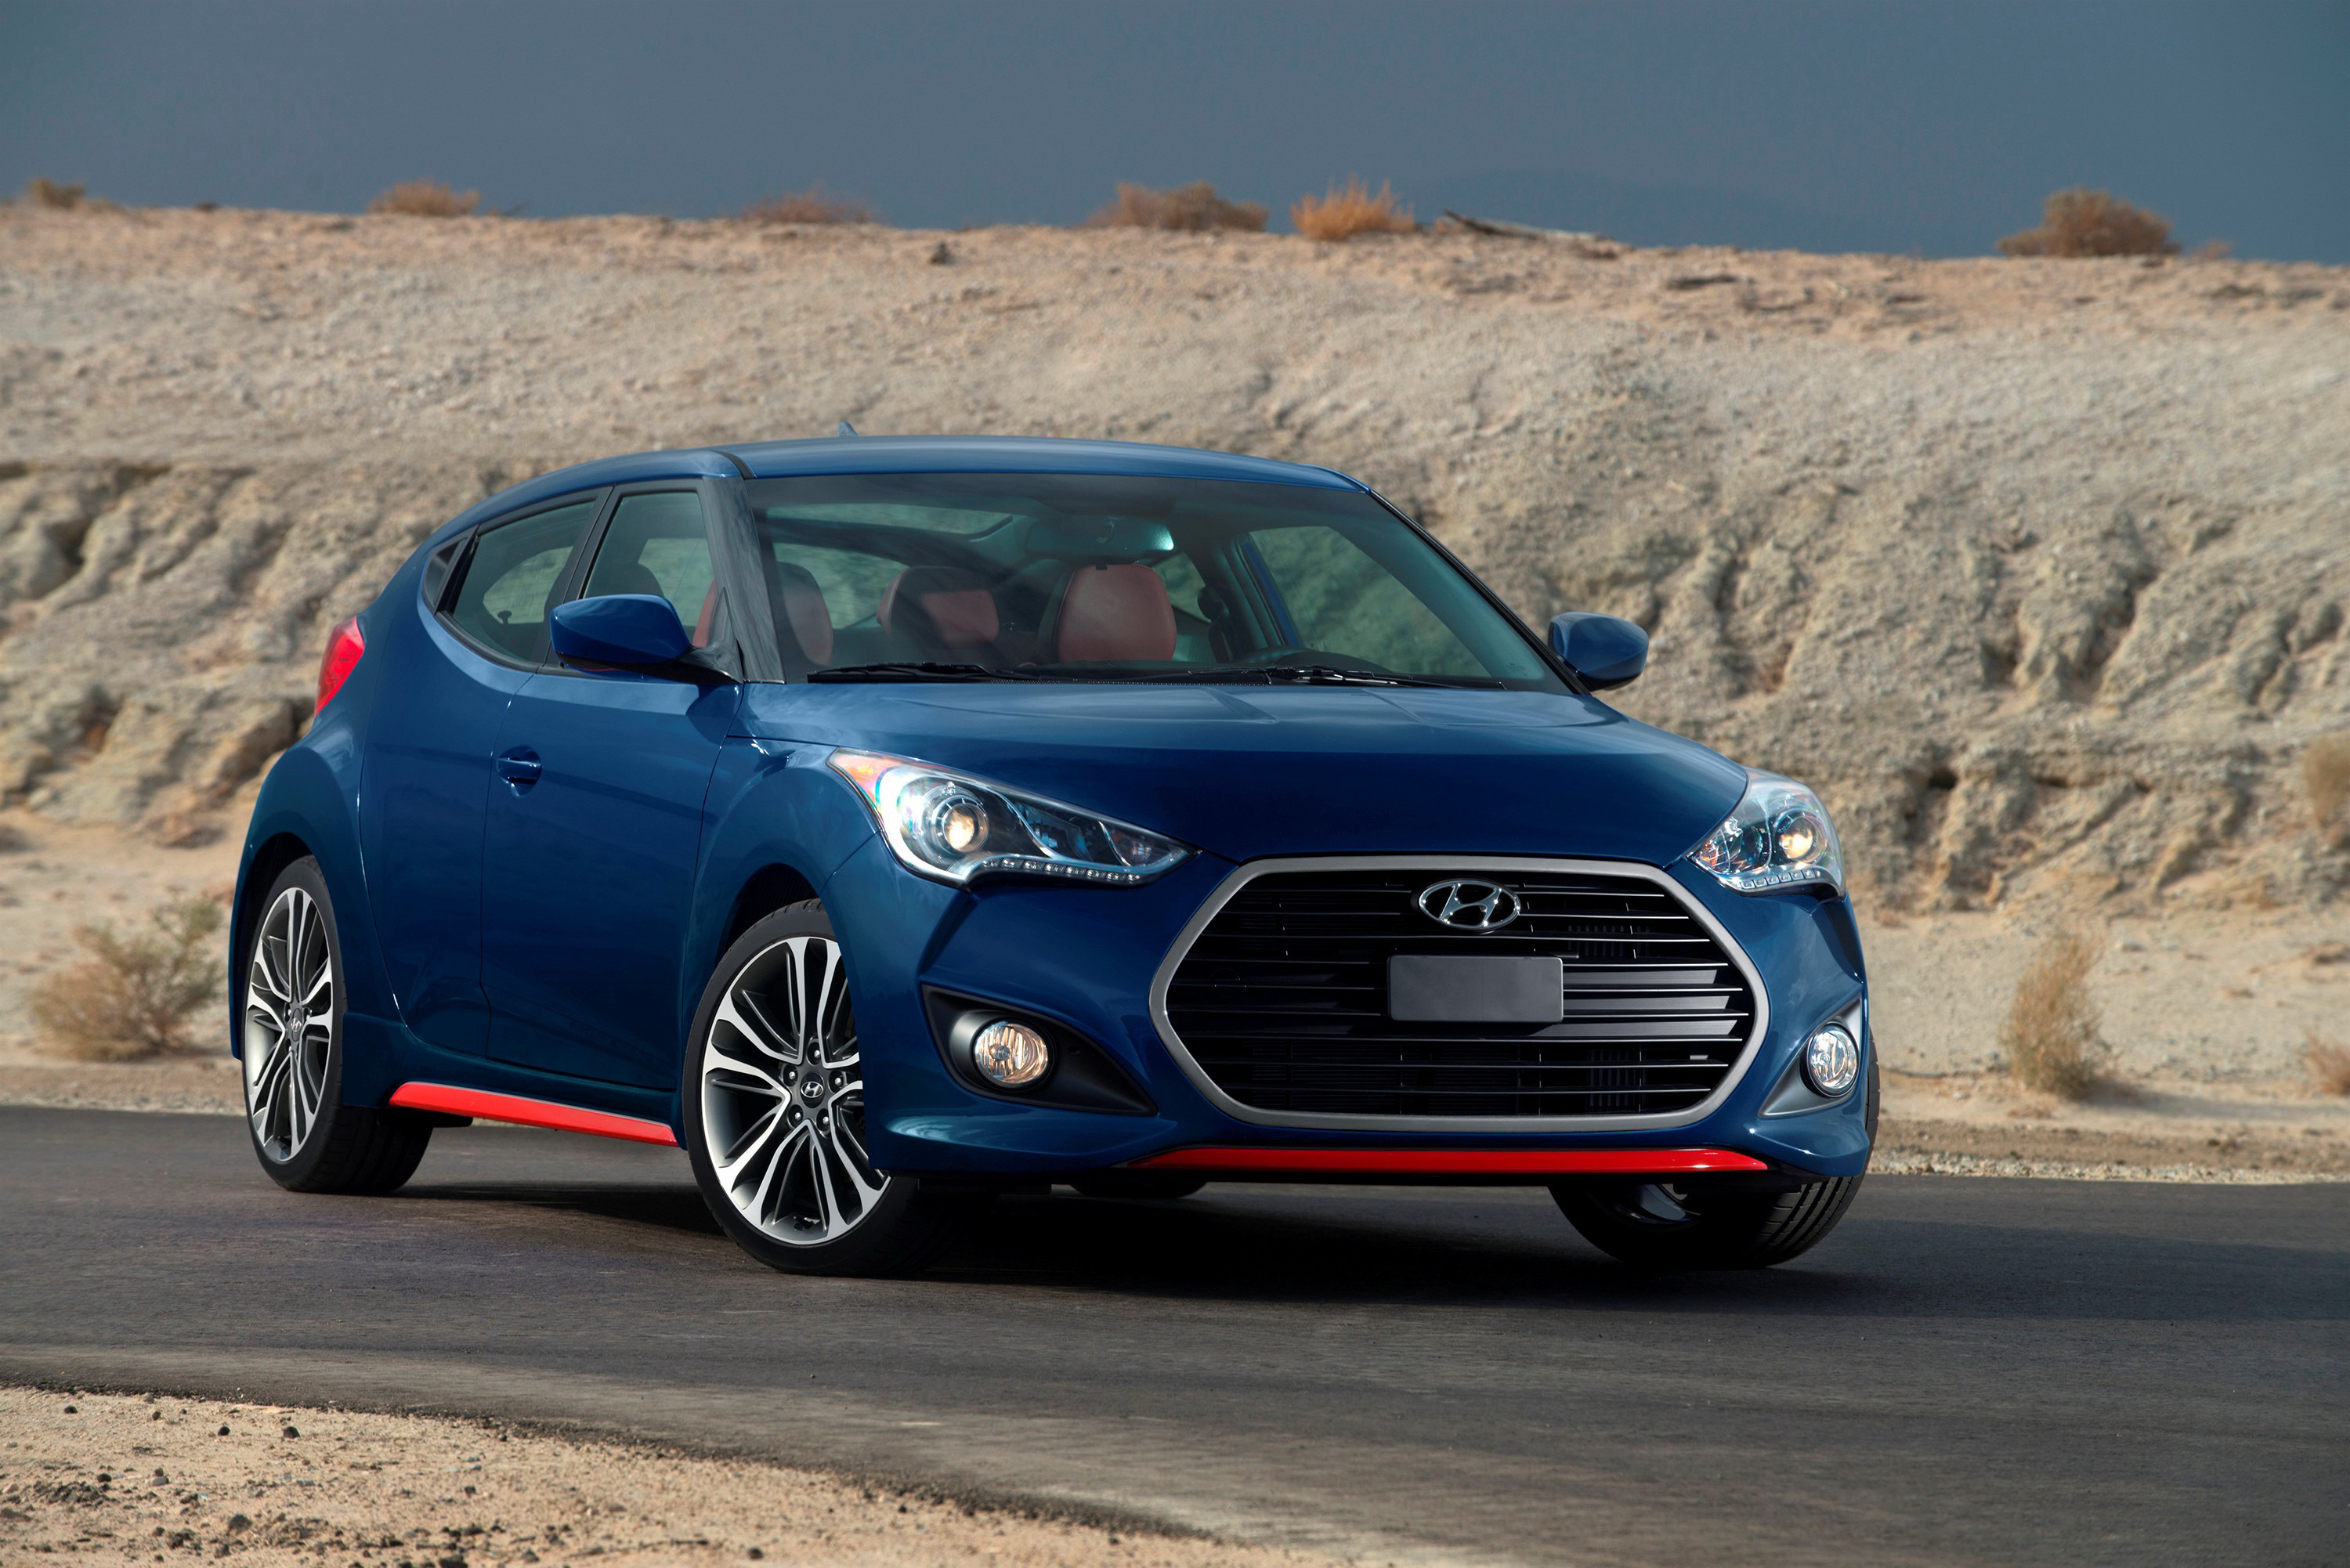 2016 Hyundai Veloster Turbo R-Spec | Top Speed